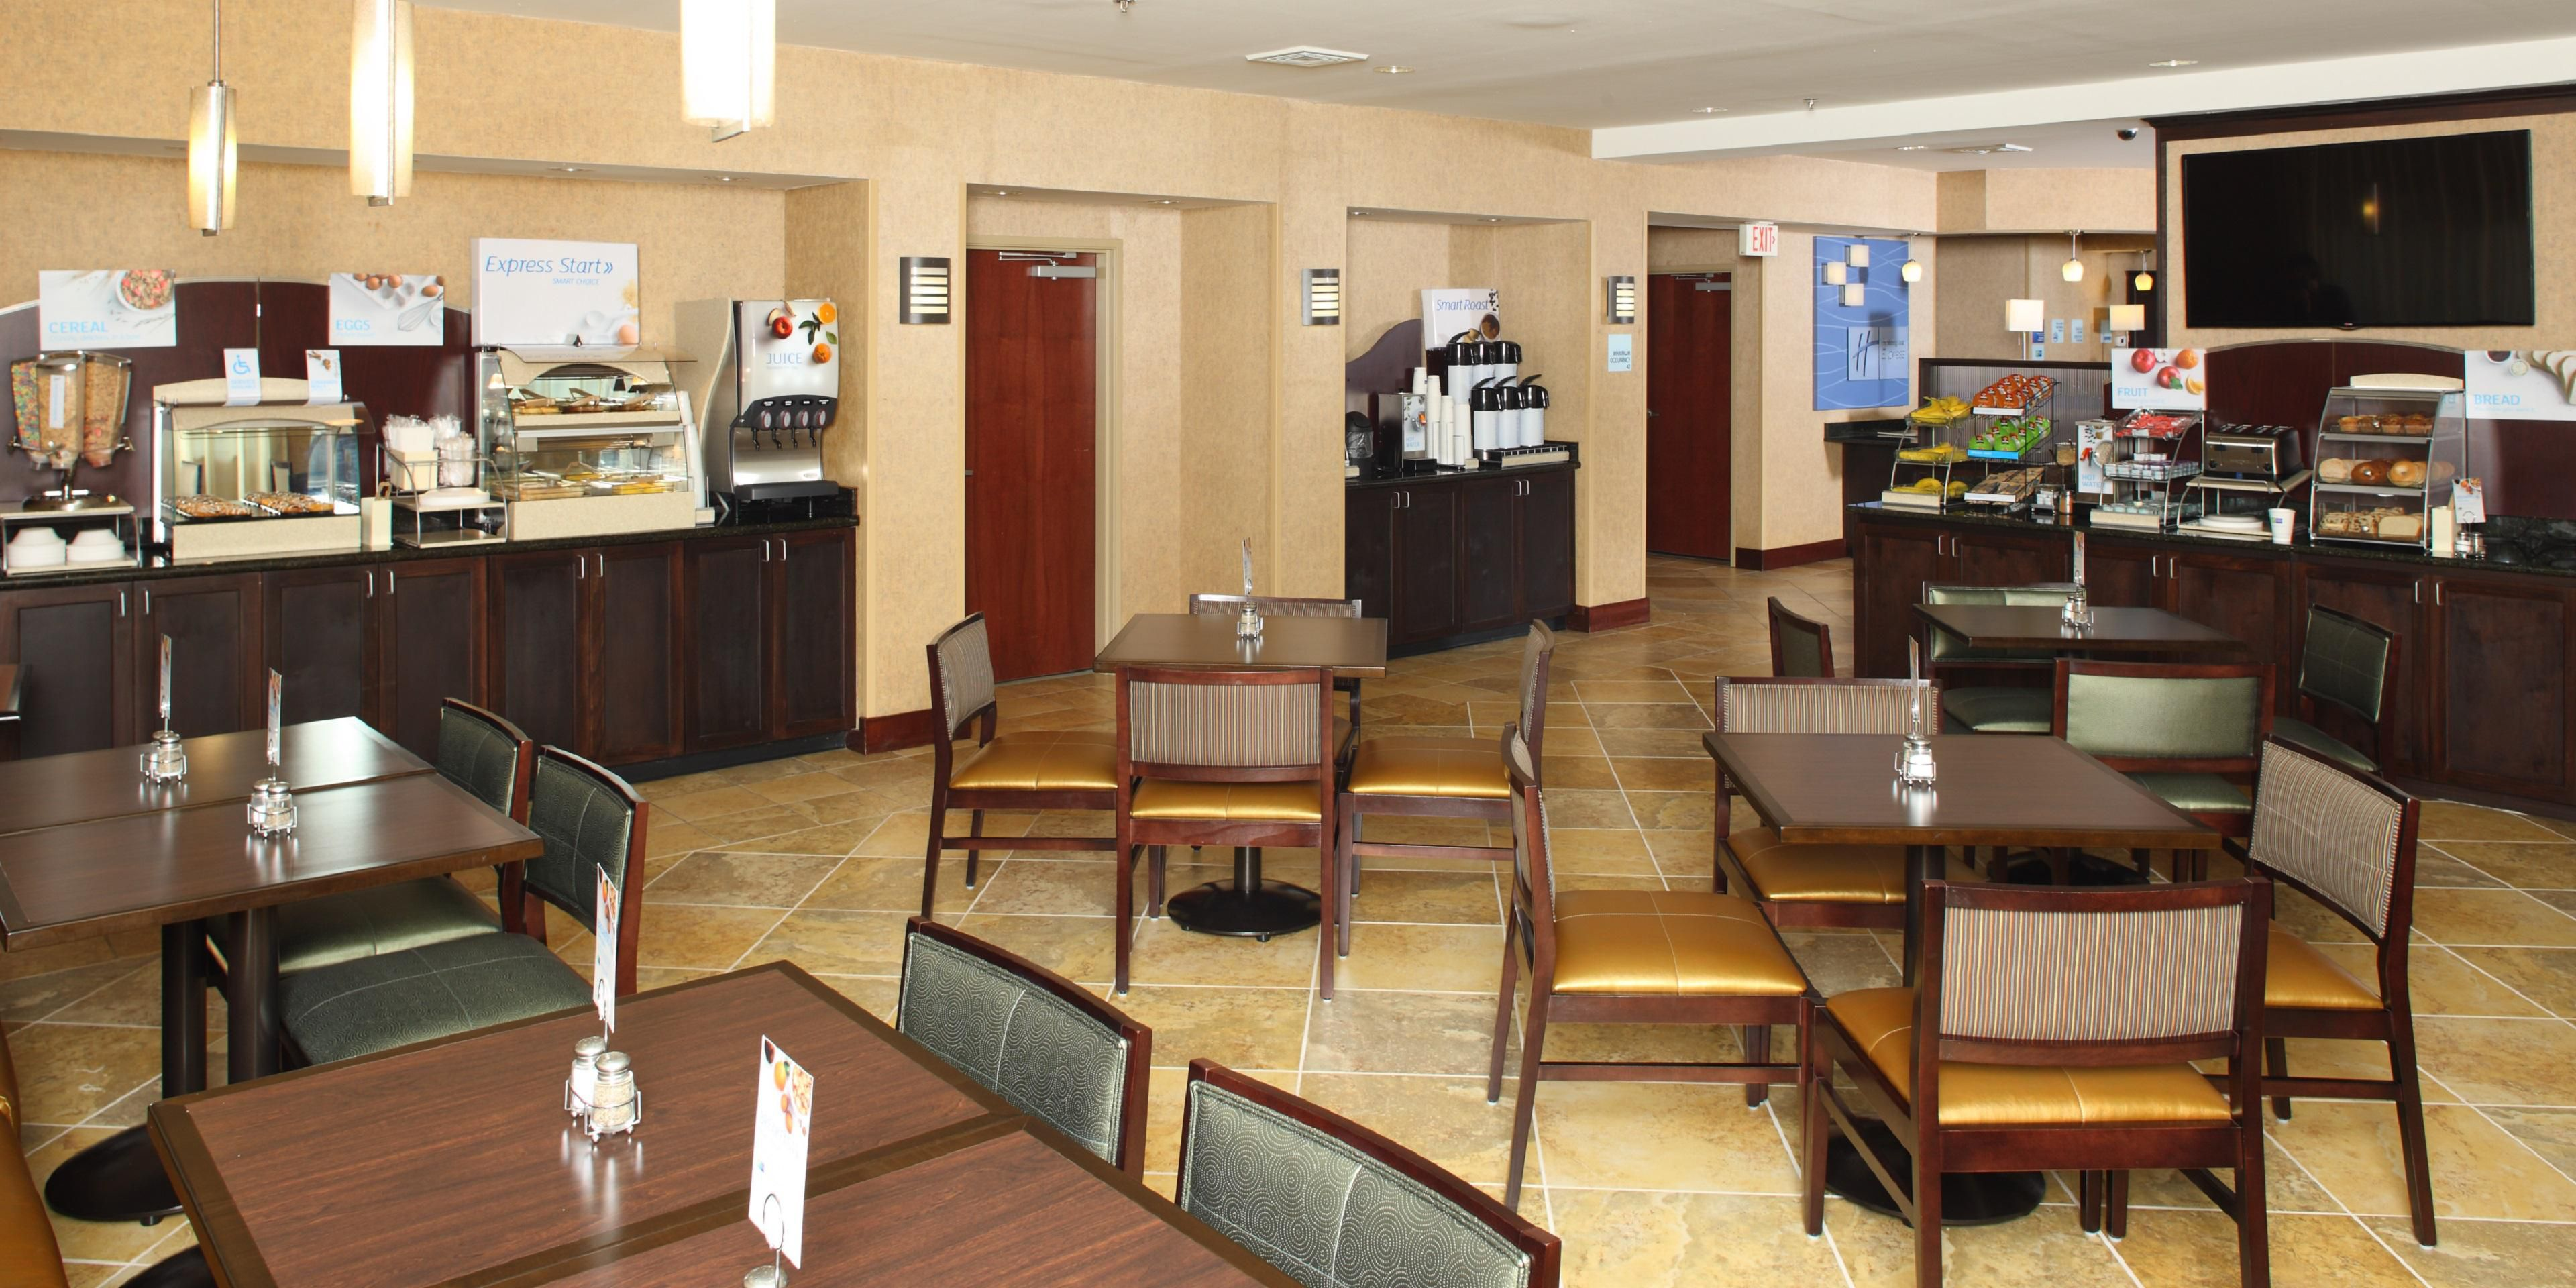 Holiday Inn Express & Suites Mobile West - I-65 Hotel by IHG